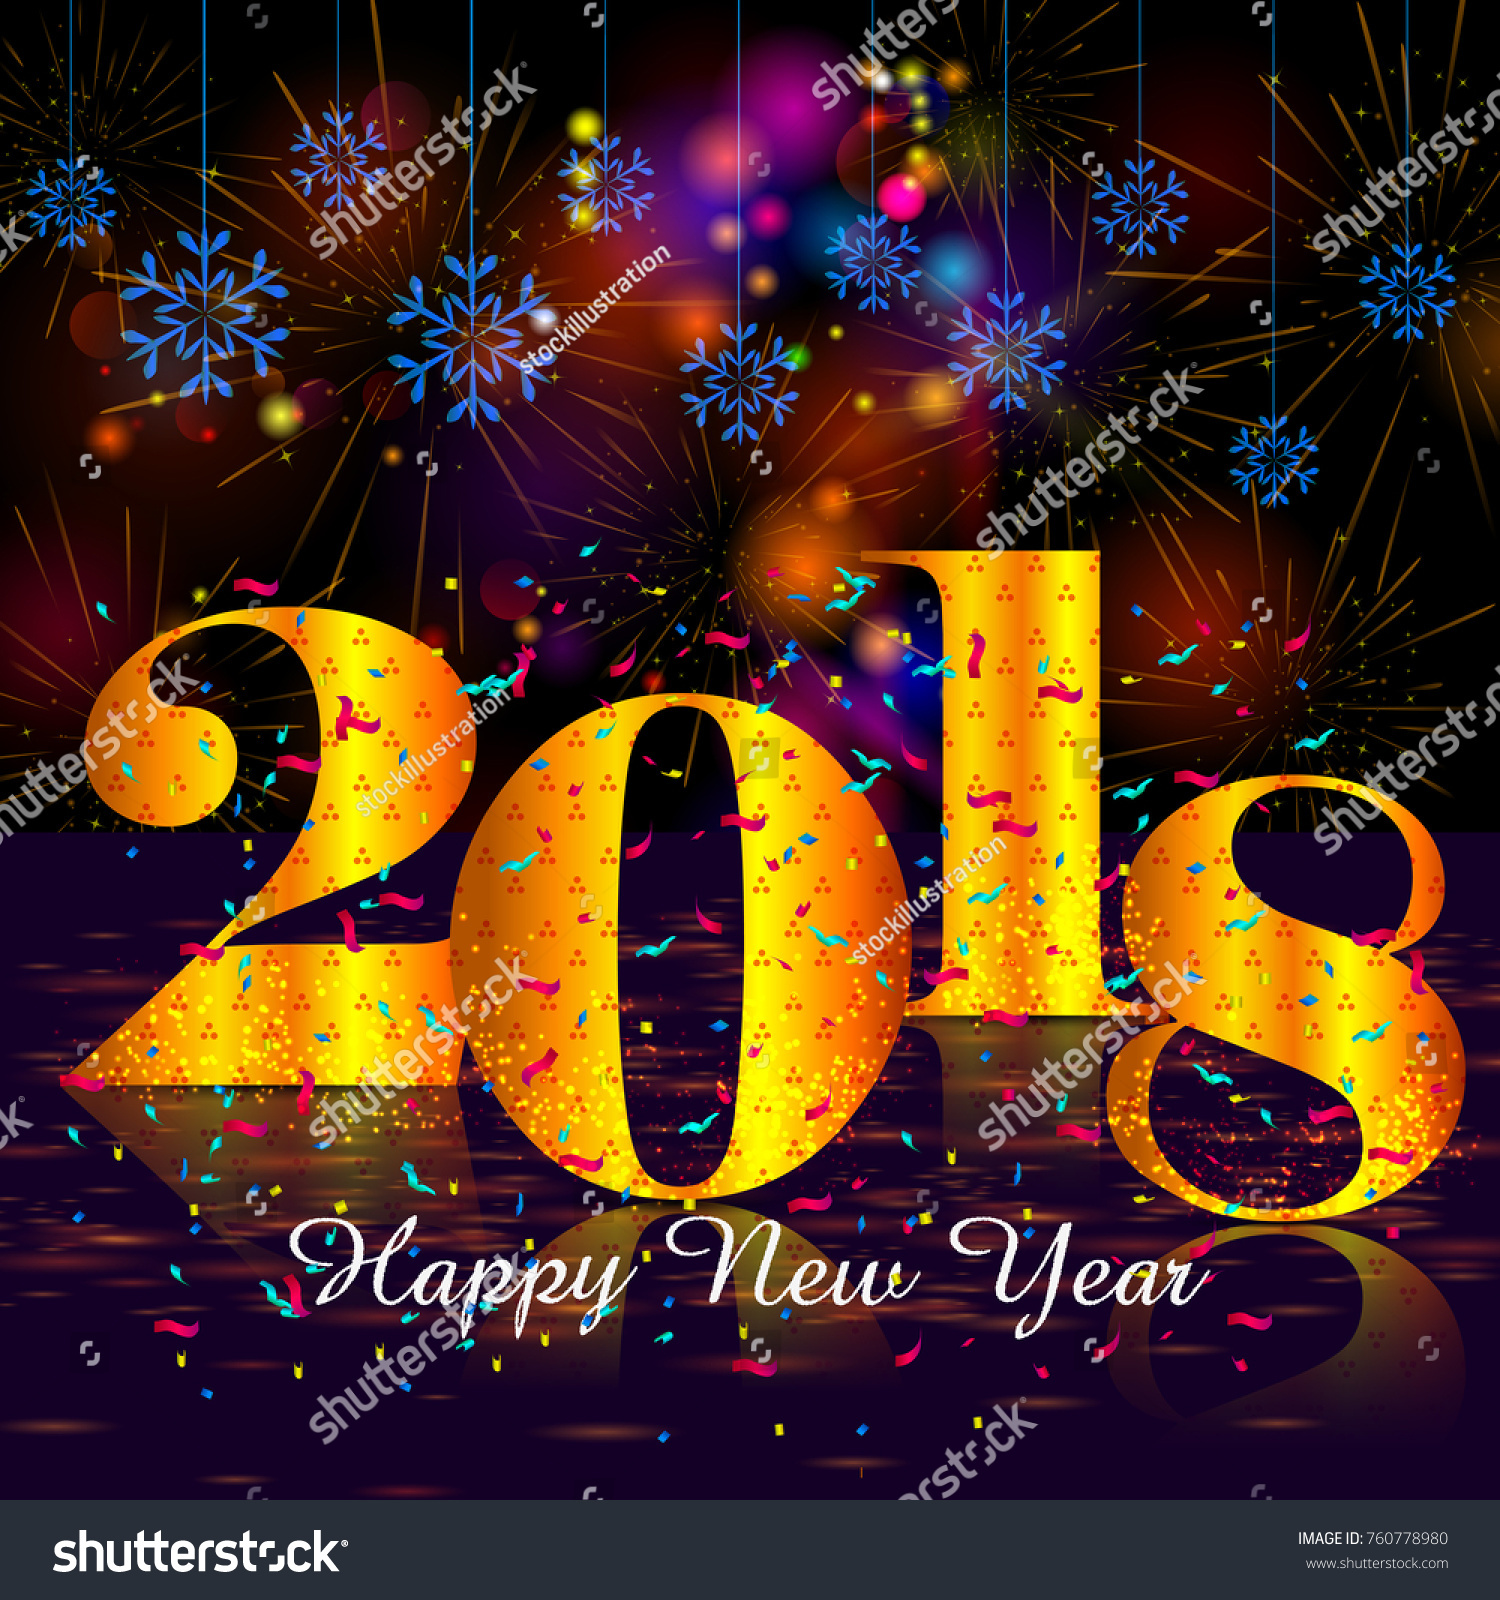 Happy New Year 2018 Wishes Greeting Stock Vector Royalty Free